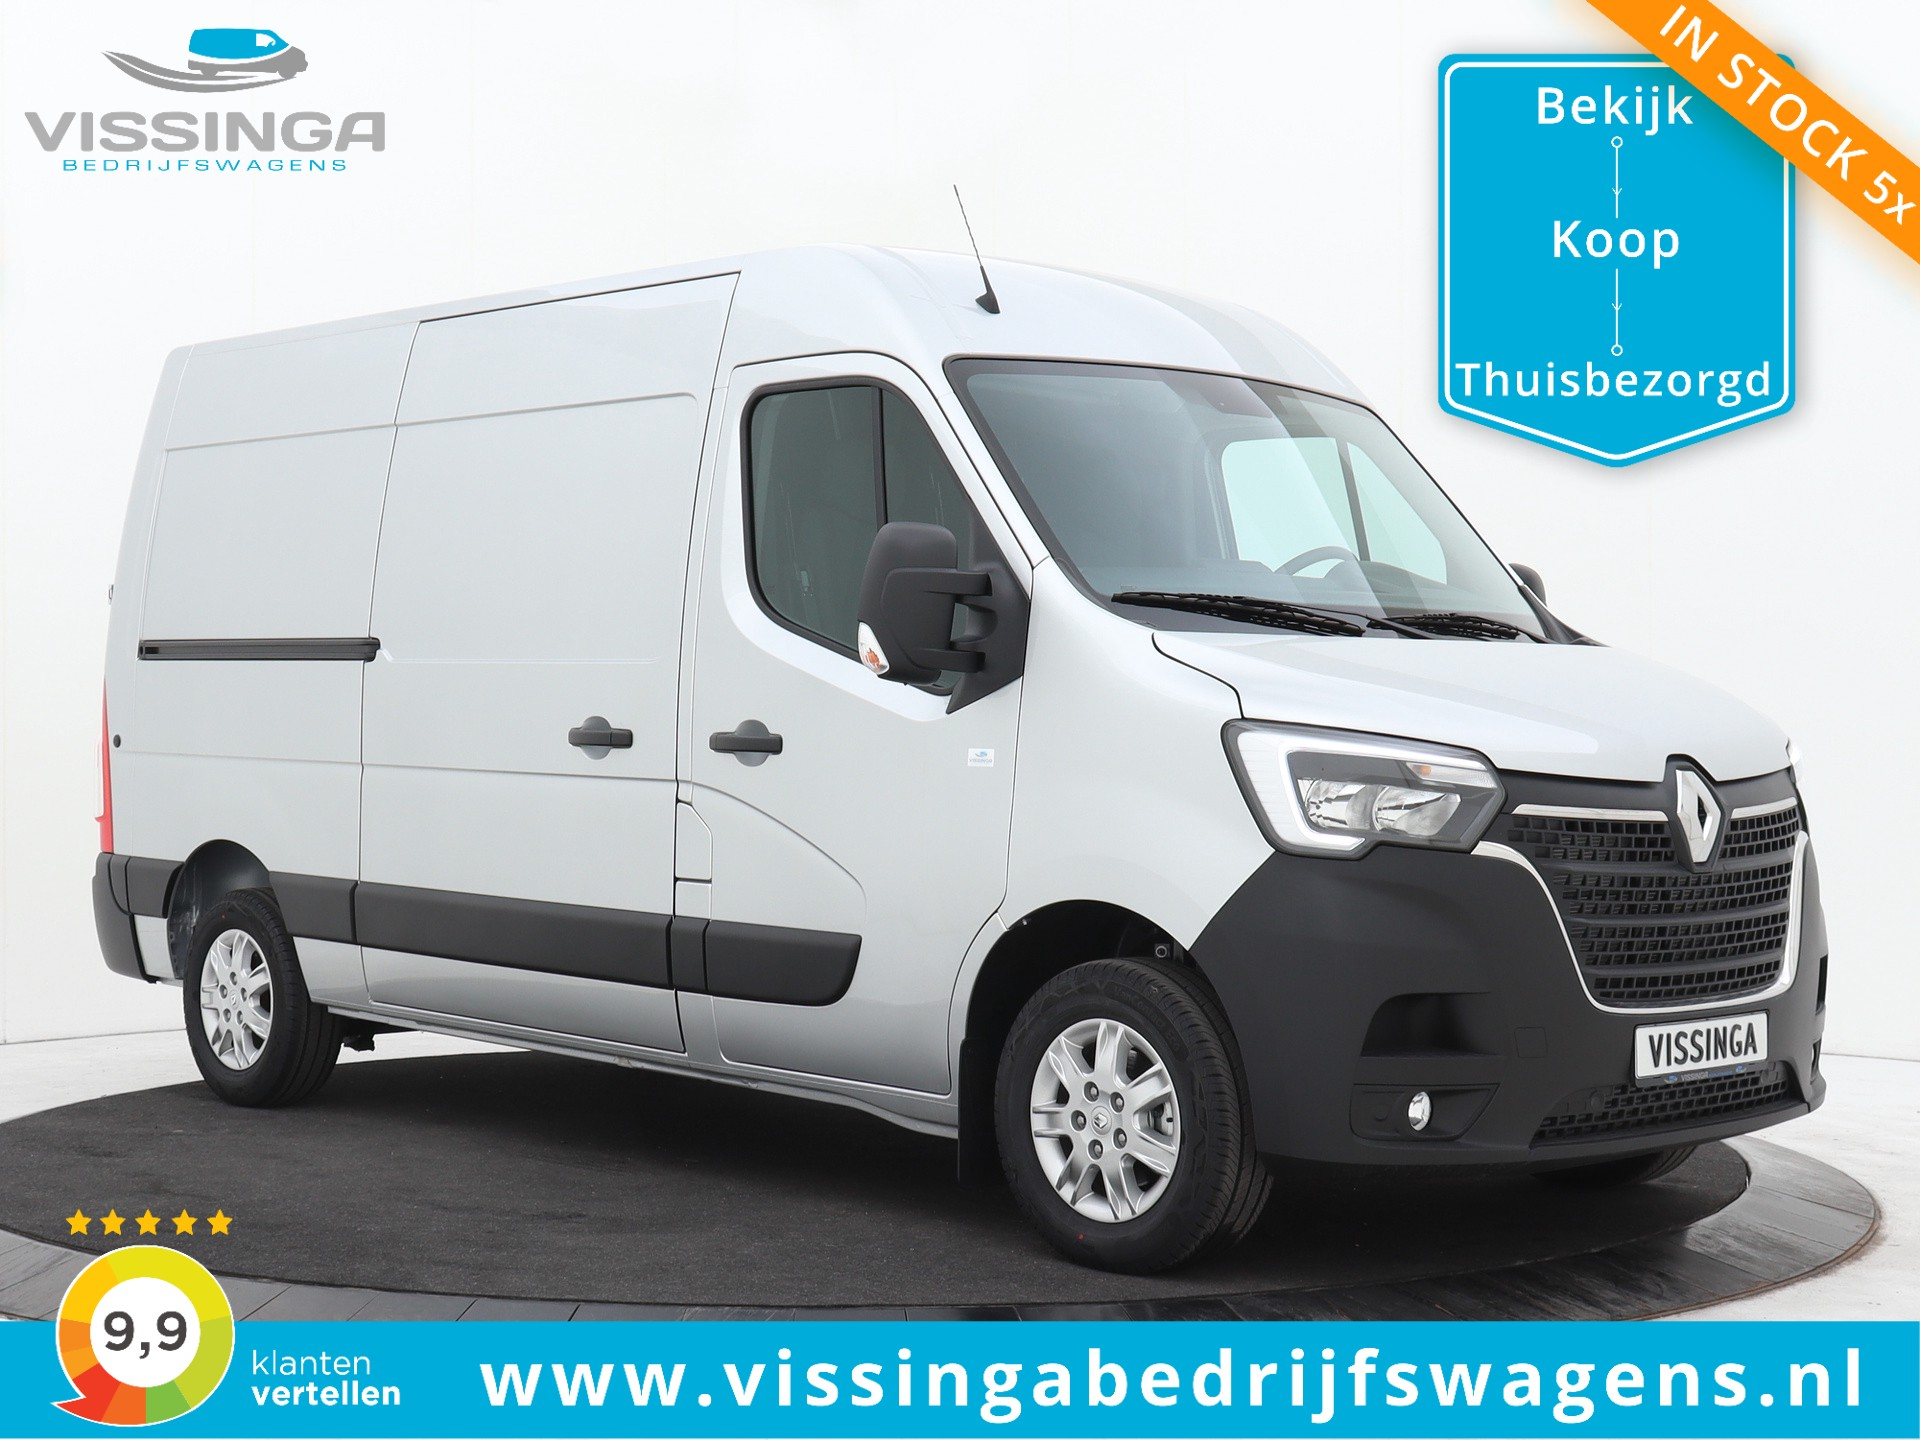 Renault Master T35 2.3 dCi L2H2 150 pk Twin-Turbo Automaat